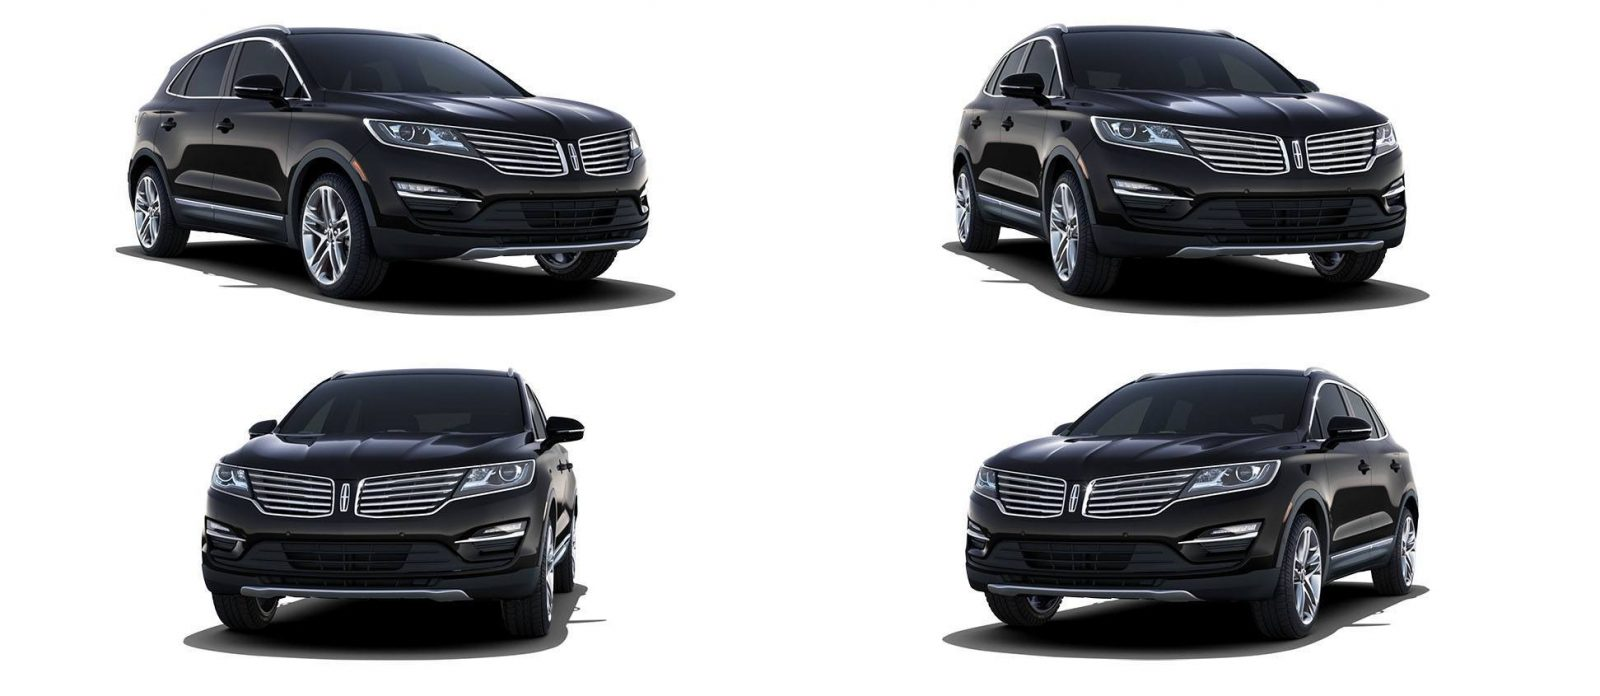 2015 Lincoln MKC Crossover - A Cool Mix of Infiniti and Audi110